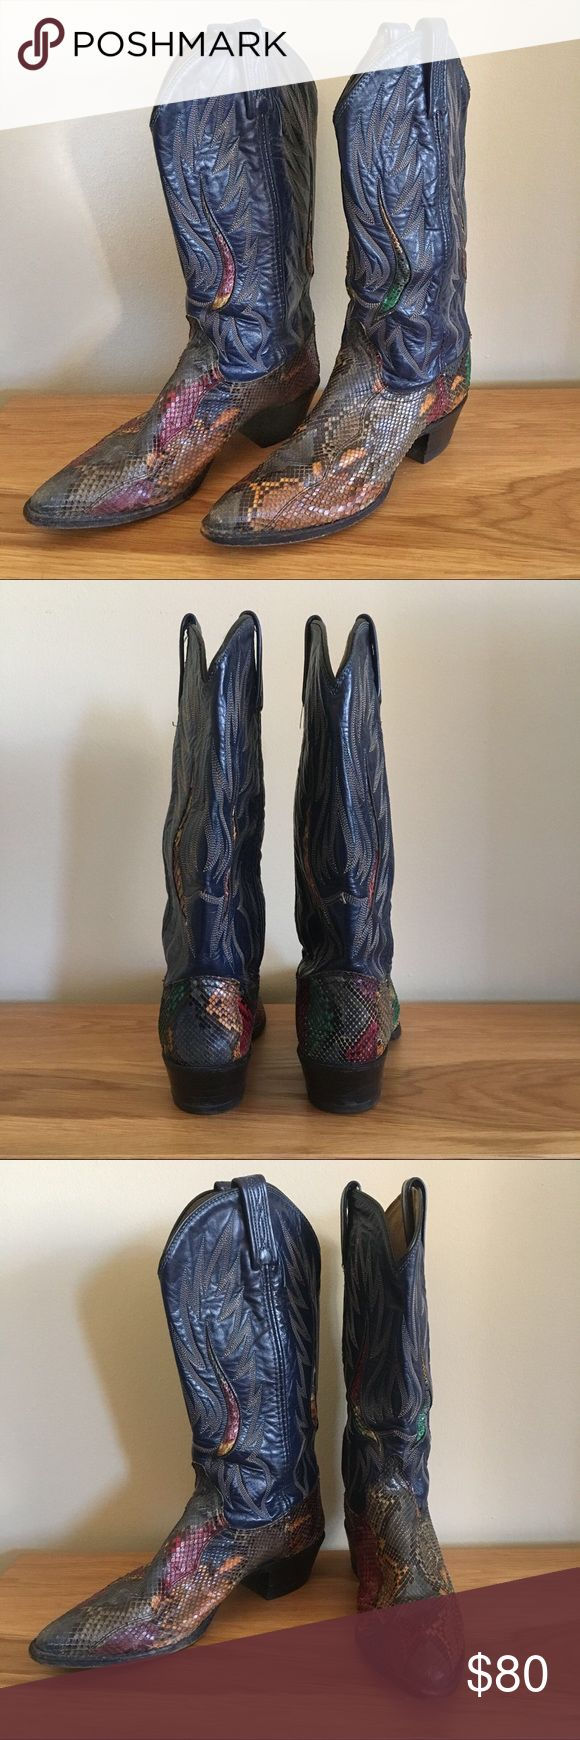 Vintage Dan Post Snakeskin Cowboy Boots Too Cool For School Cowboy Boots! One of a kind embroidery & pattern. Size 8.5 (39). Made in USA. Dan Post Shoes